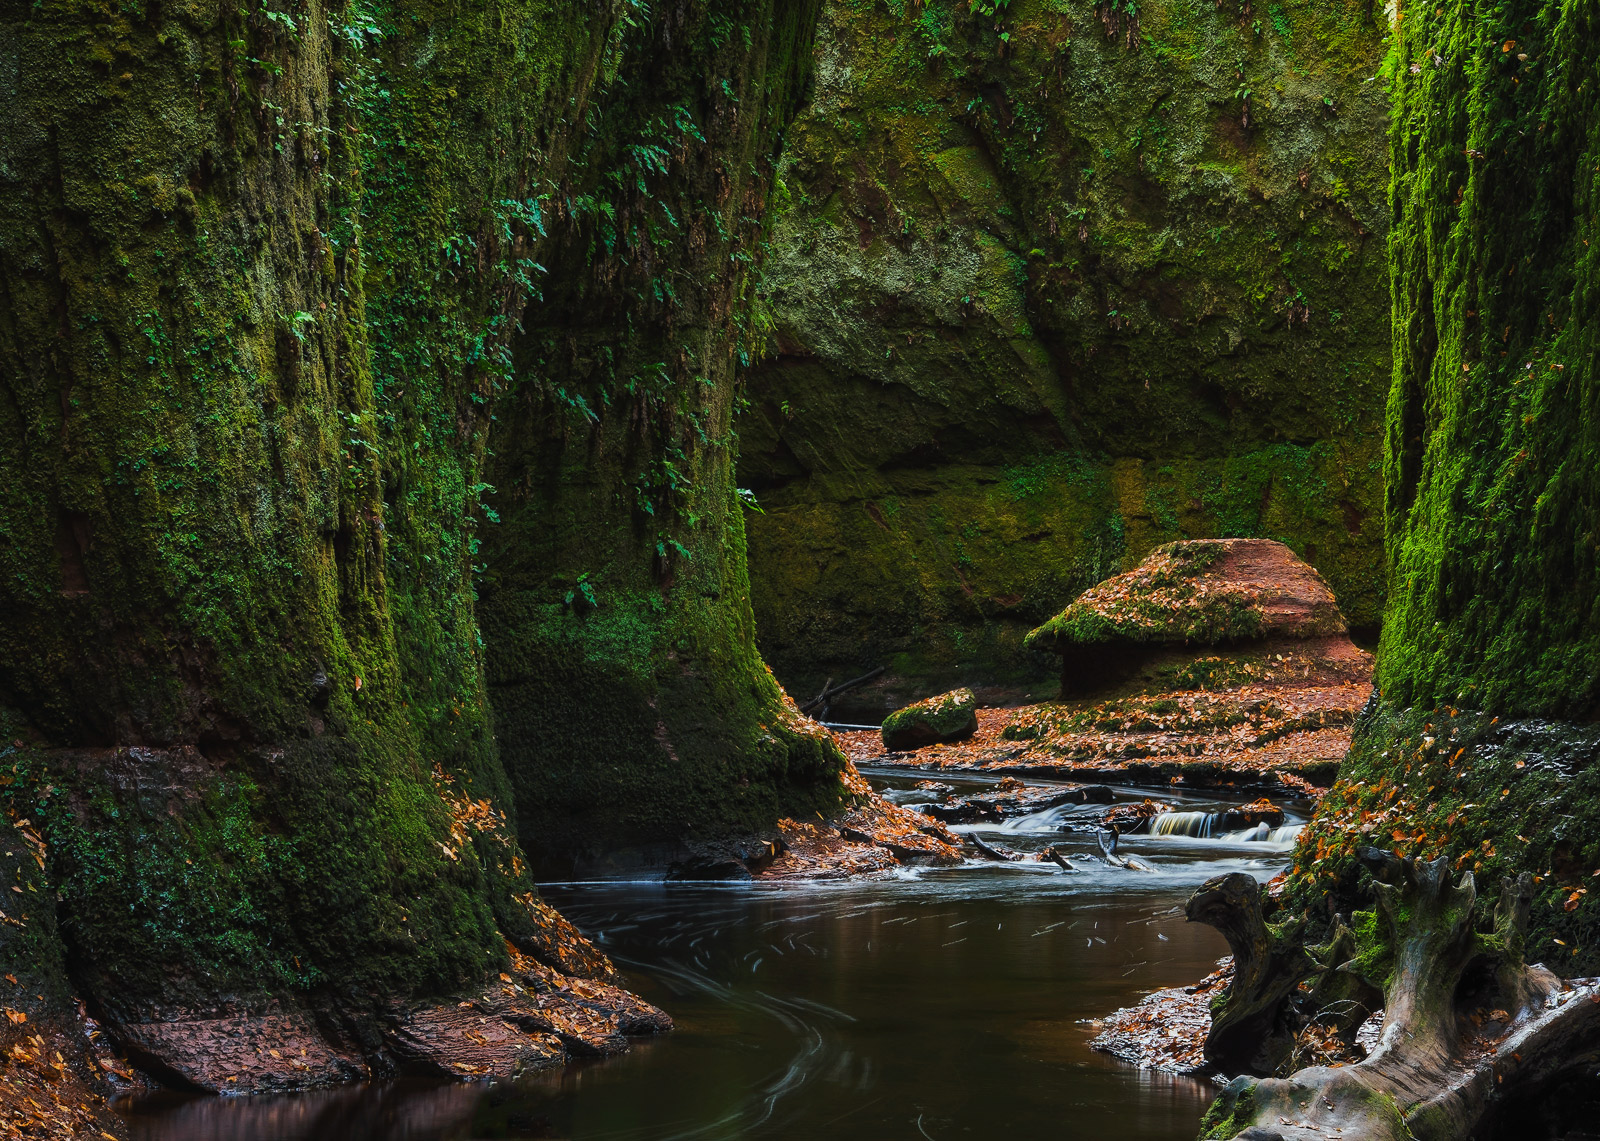 A woodland glade in the Trossachs conceals a fascinating emerald gorge of moss covering red sandstone. The moss hanging...